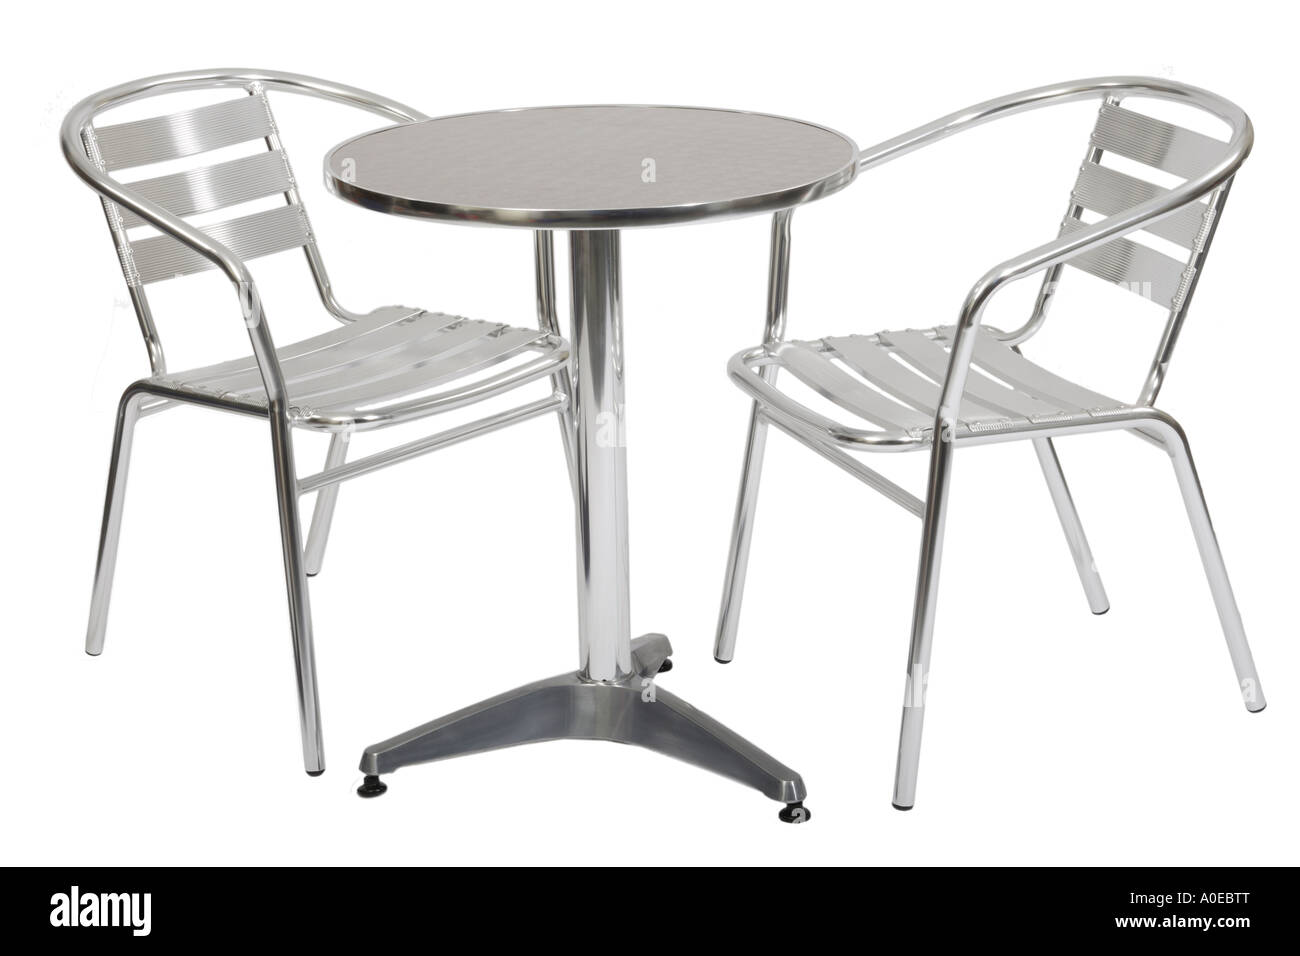 Charmant Outdoor Metal Cafe Table And Two Chairs Stock Photo: 9970199 ...